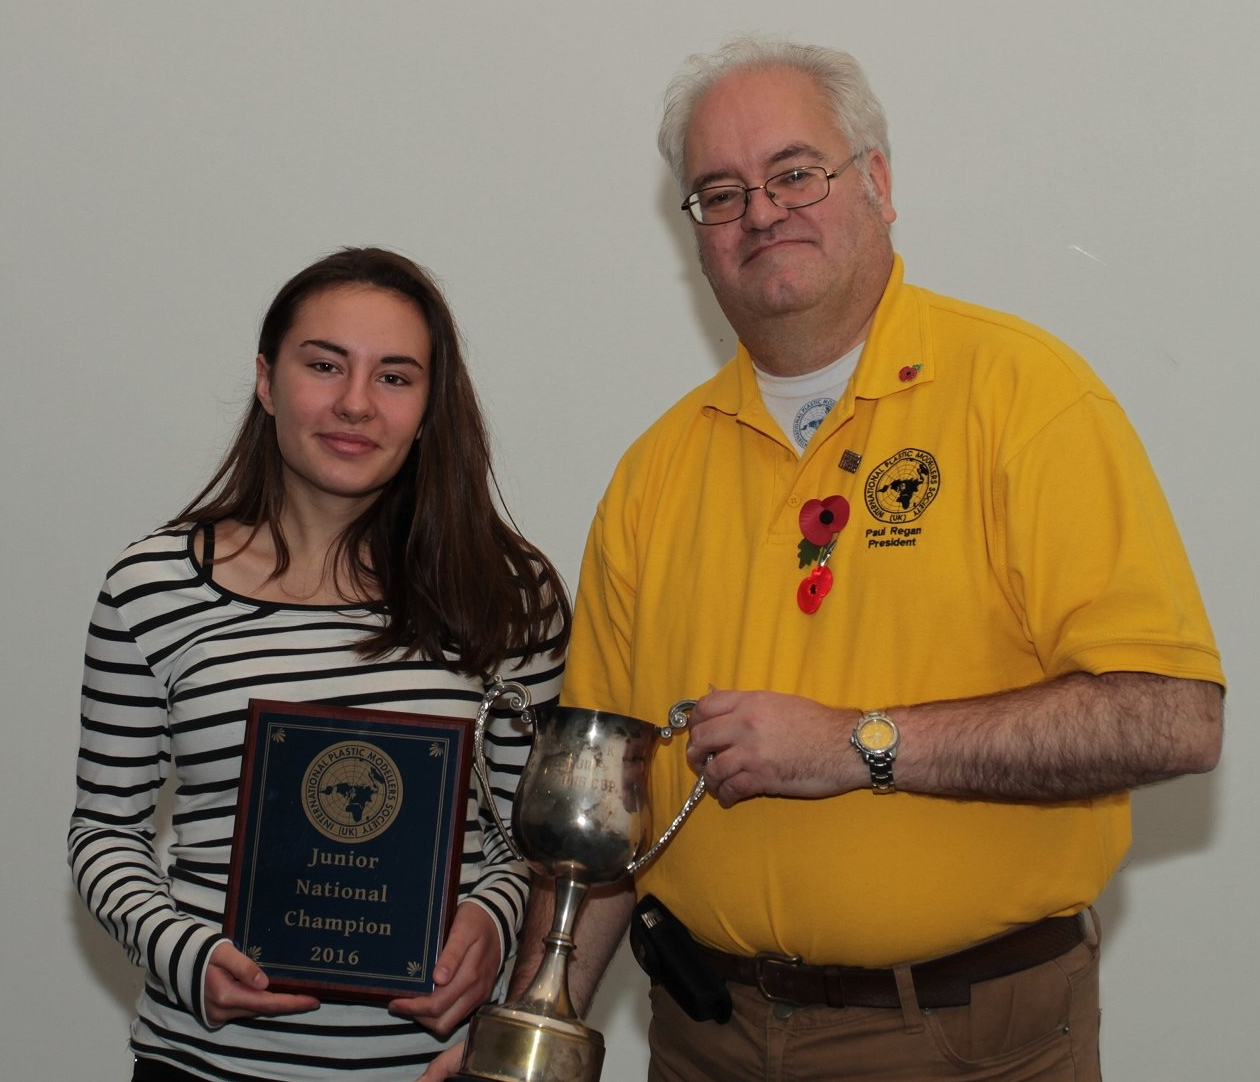 SMW 2016 Junior Best of Show winner Pavlina Samalova receiving her award from IPMS(UK) President Paul Regan